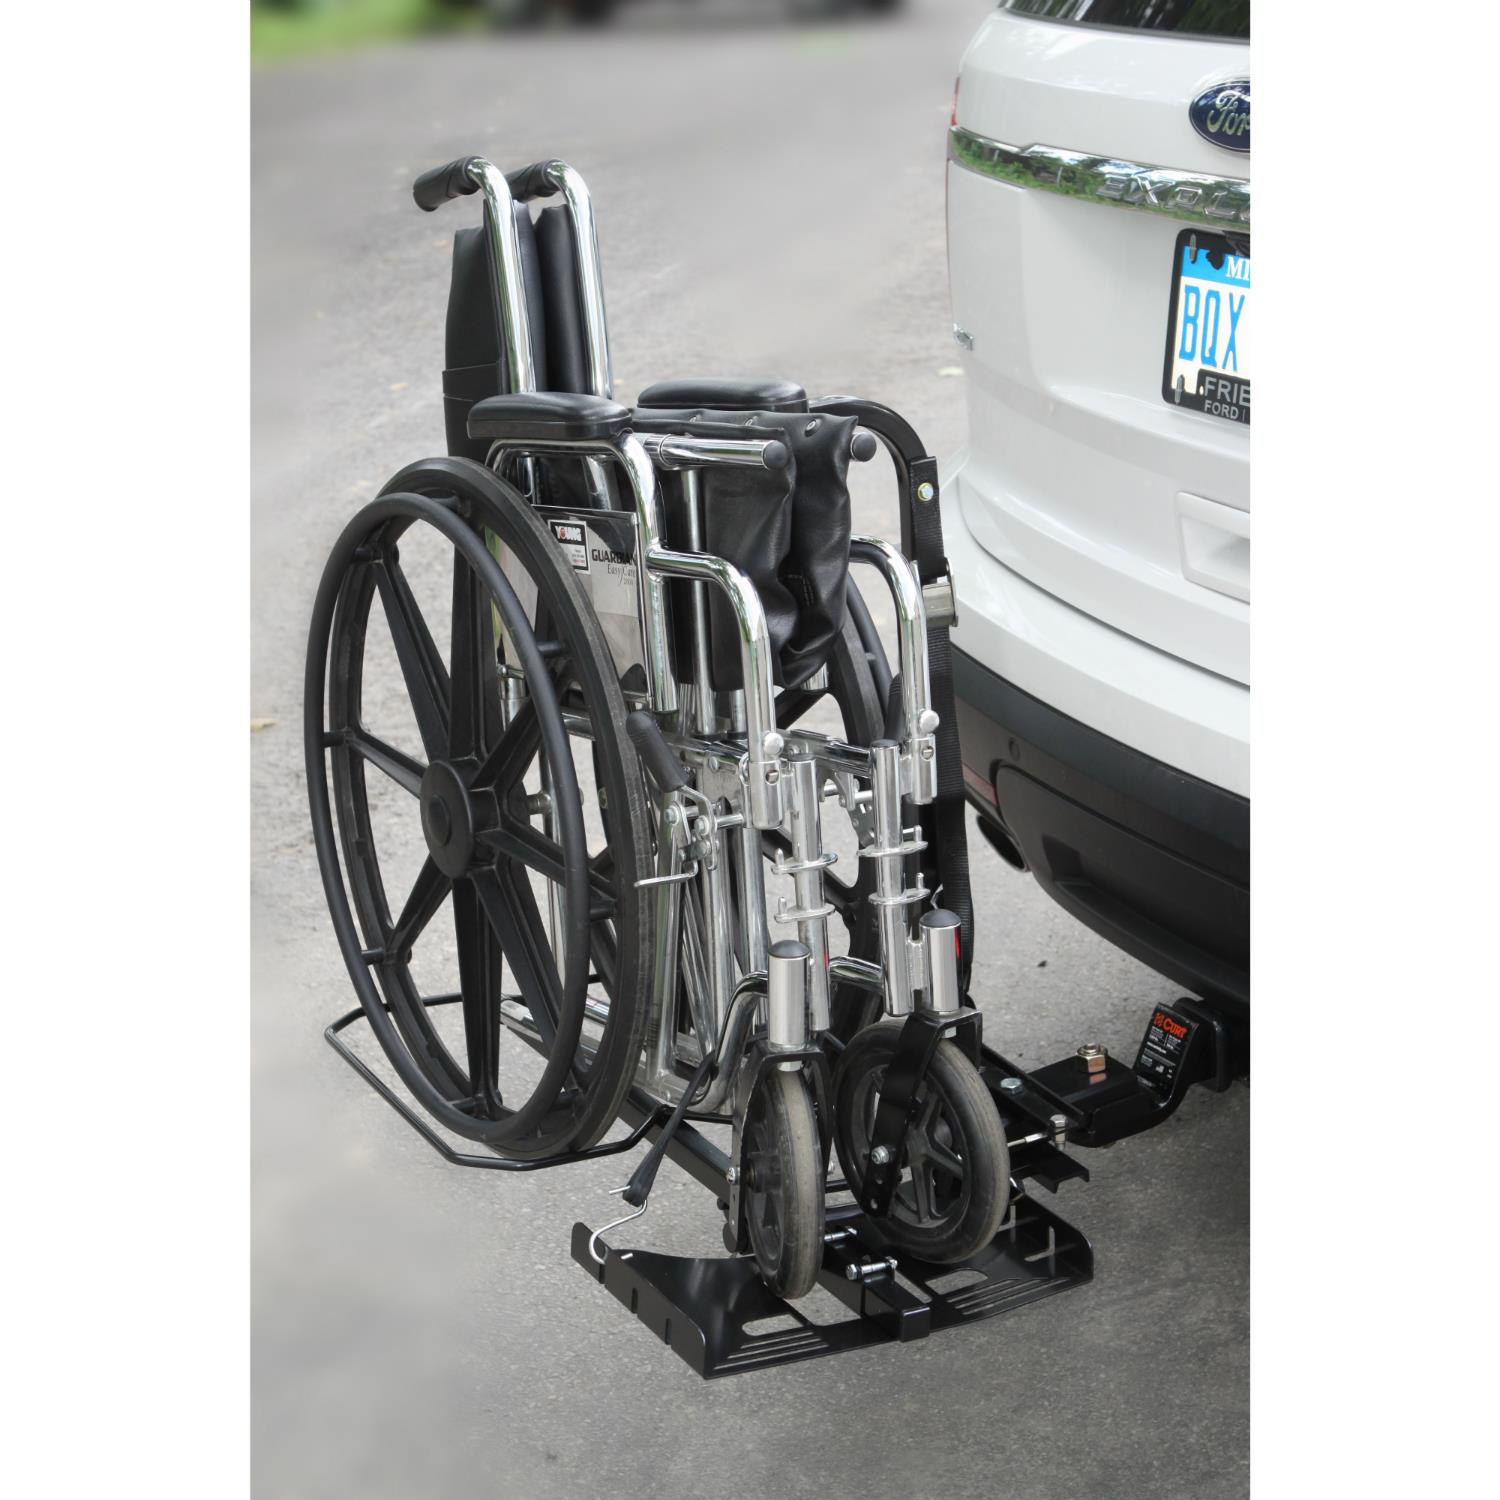 Manual Lift For Disabled : U haul manual wheelchair lift tote